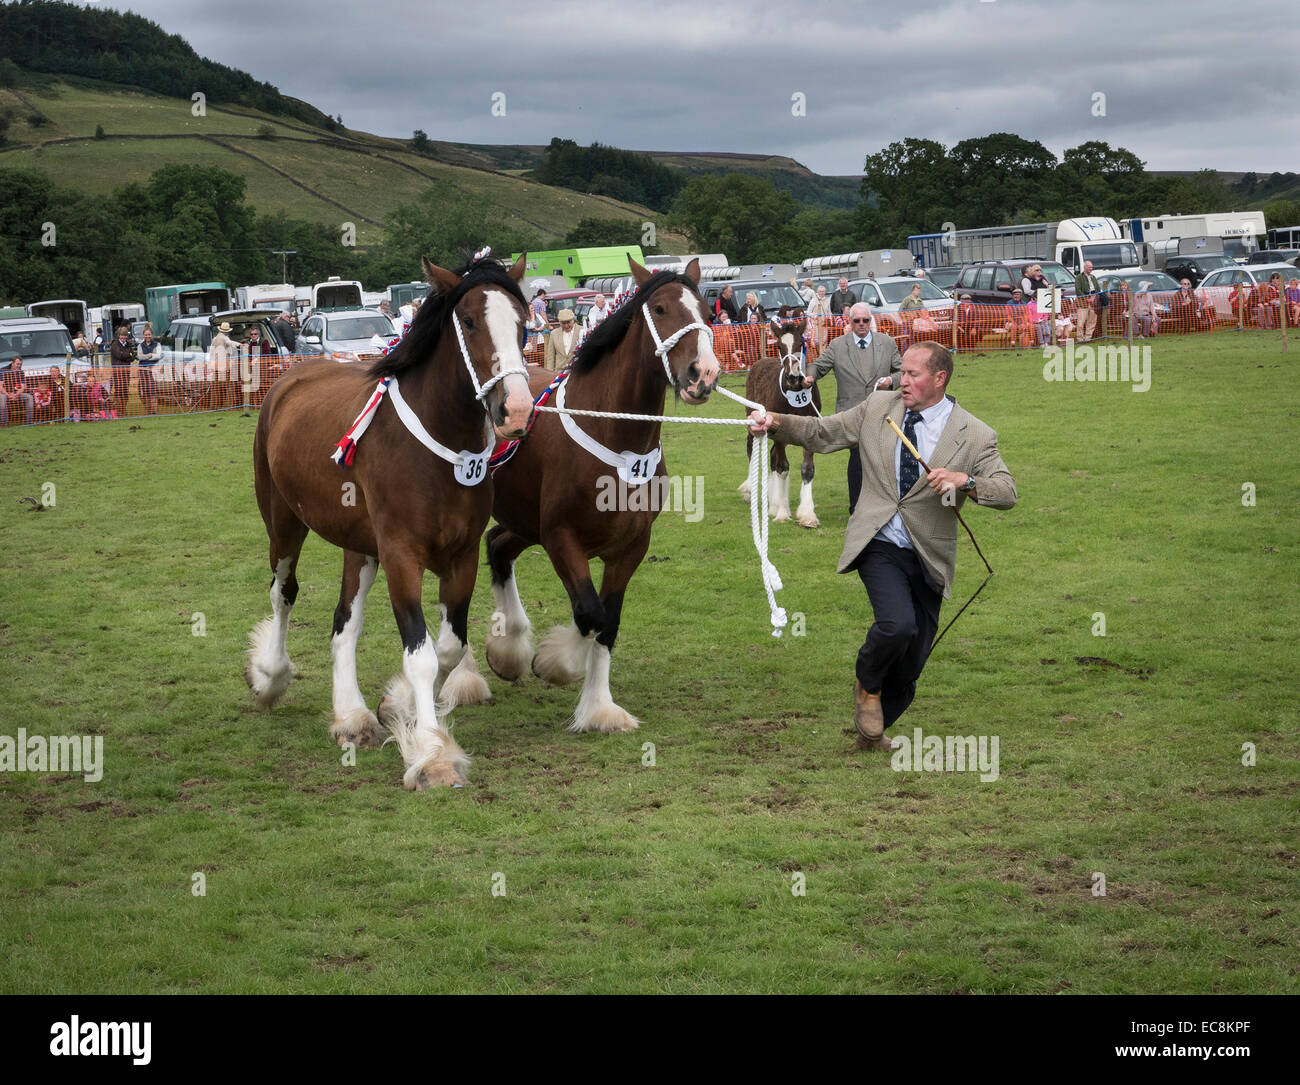 Showing Shire Horses at Rosedale Show, North Yorkshire - Stock Image